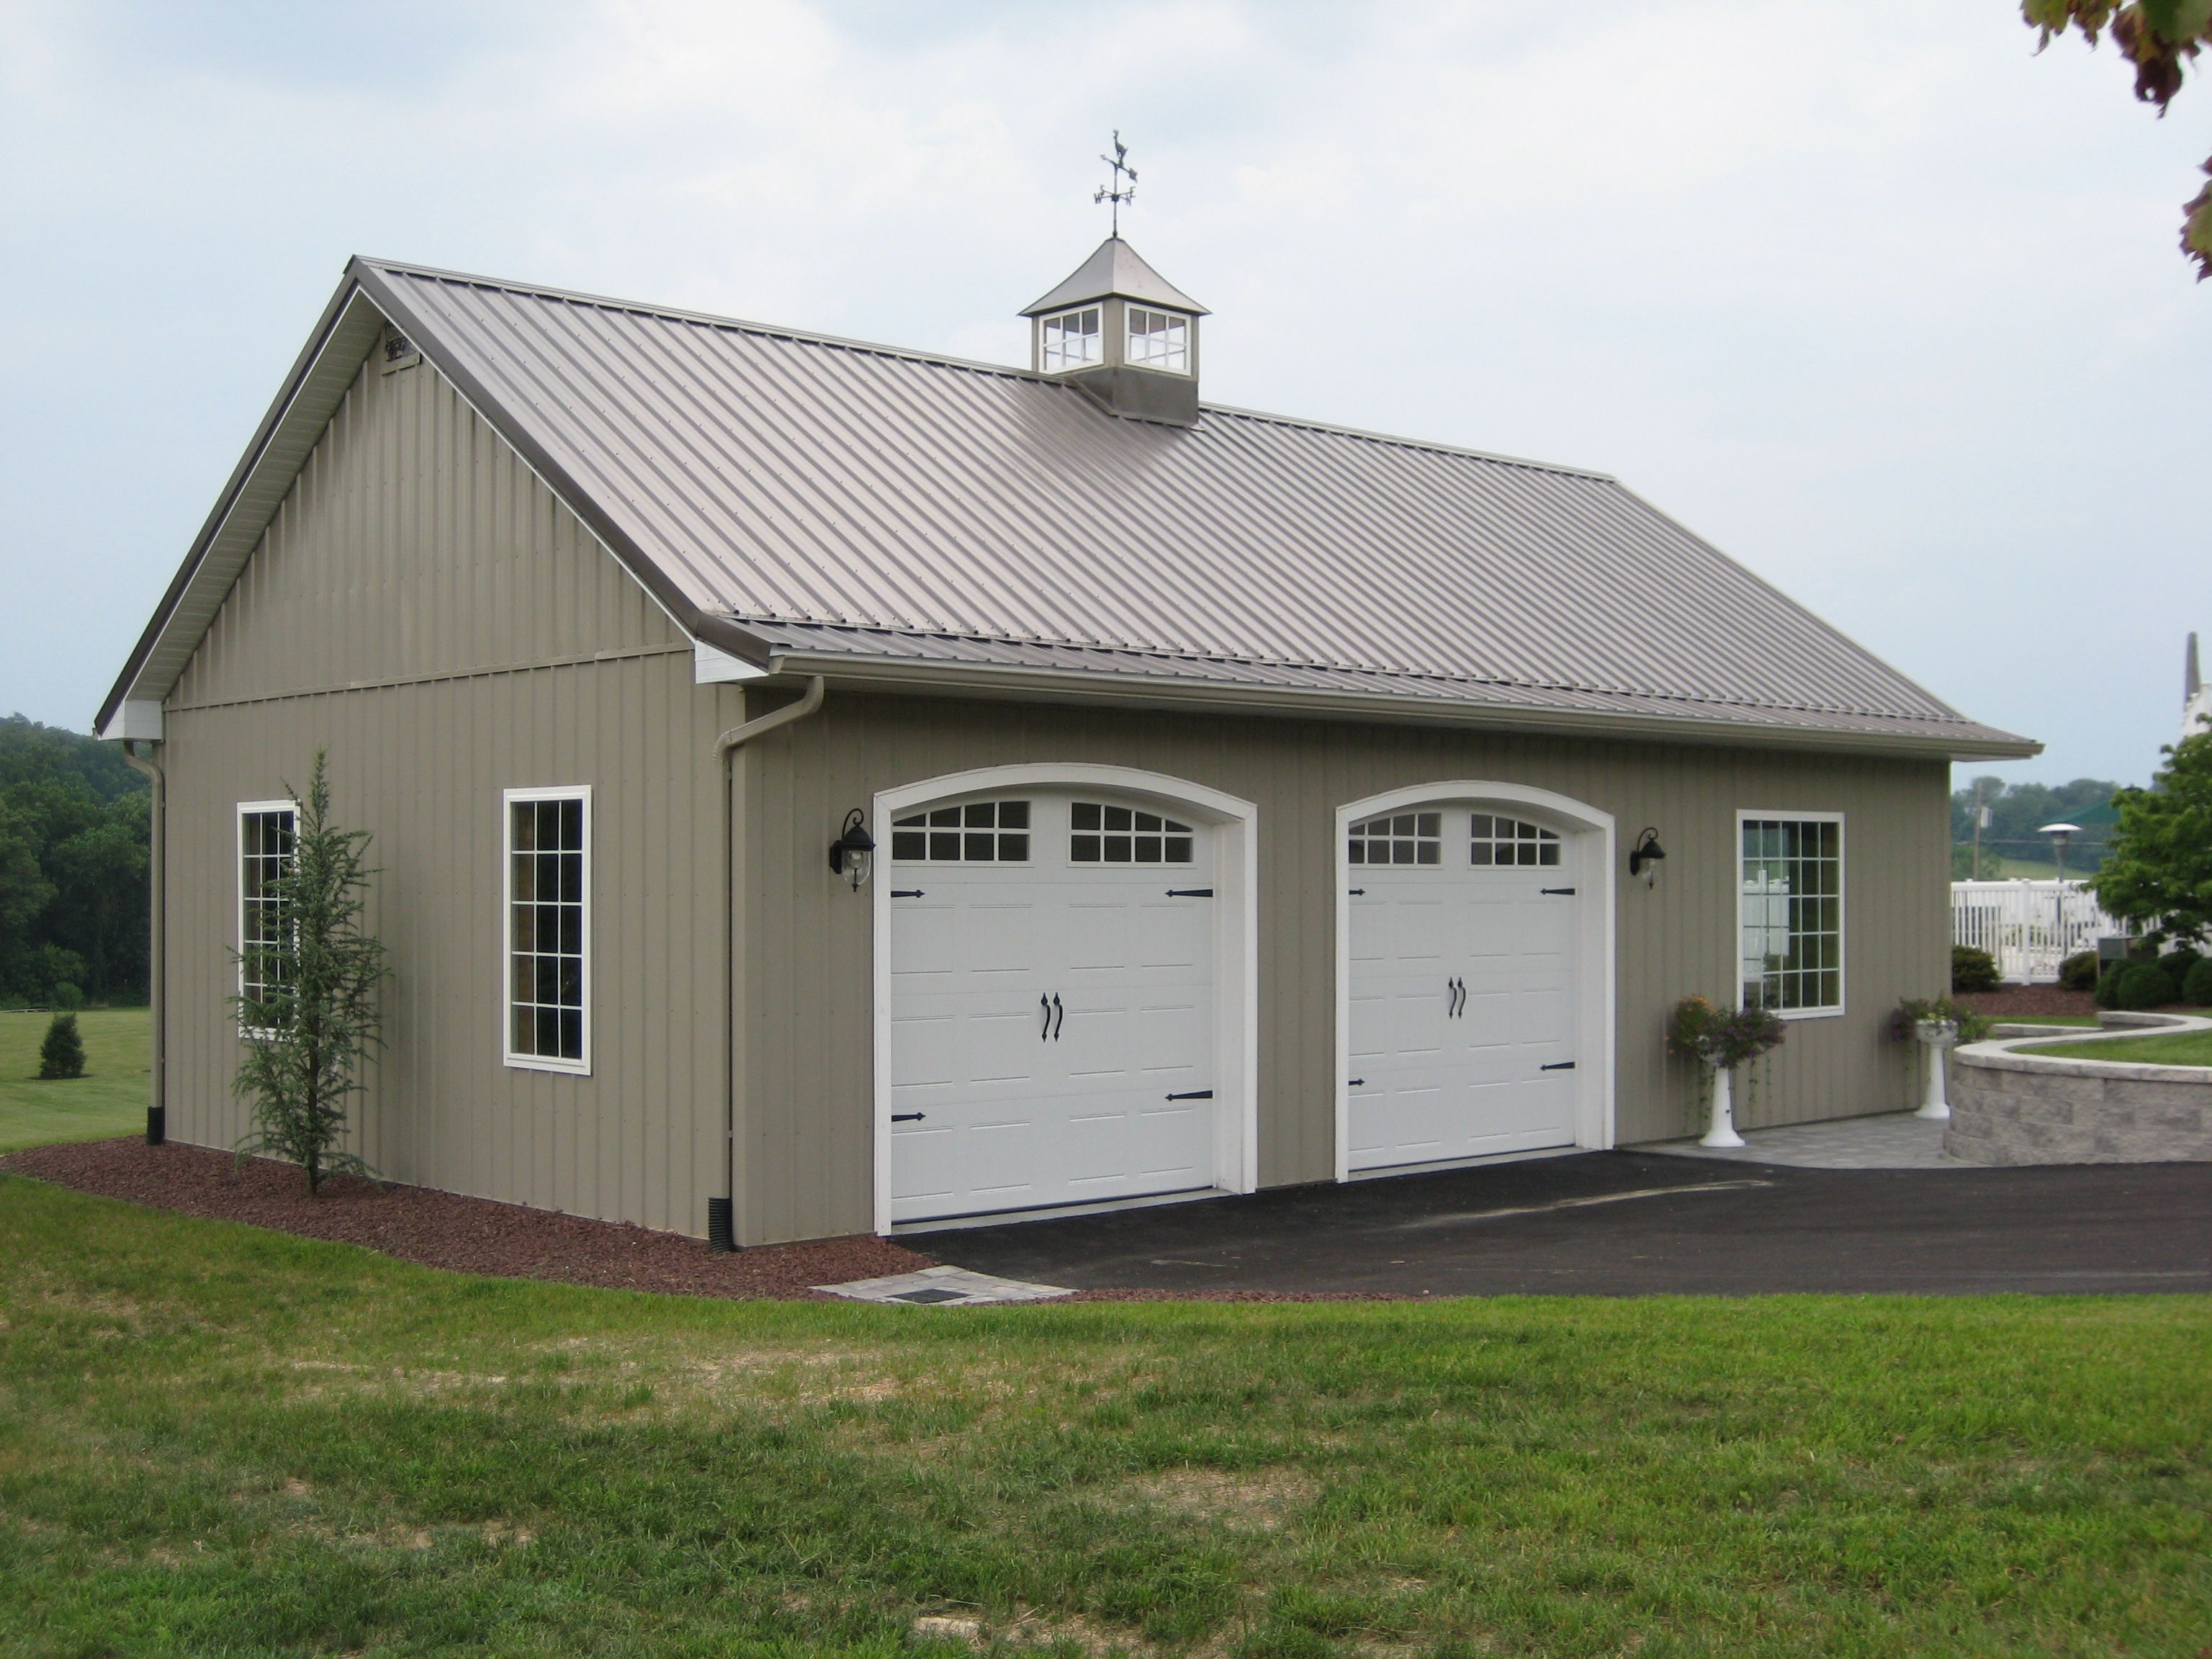 Best 25+ Pole Barn Garage Ideas On Pinterest  Pole Barns. Kayak Hanger For Garage. Standard Patio Door Size. Security Screen Door Installation Instructions. New Chamberlain Garage Door Opener. Whirlpool Double Door Refrigerator. Pole Building Garage. Outside Garage Lights. Door Alarm Sensor